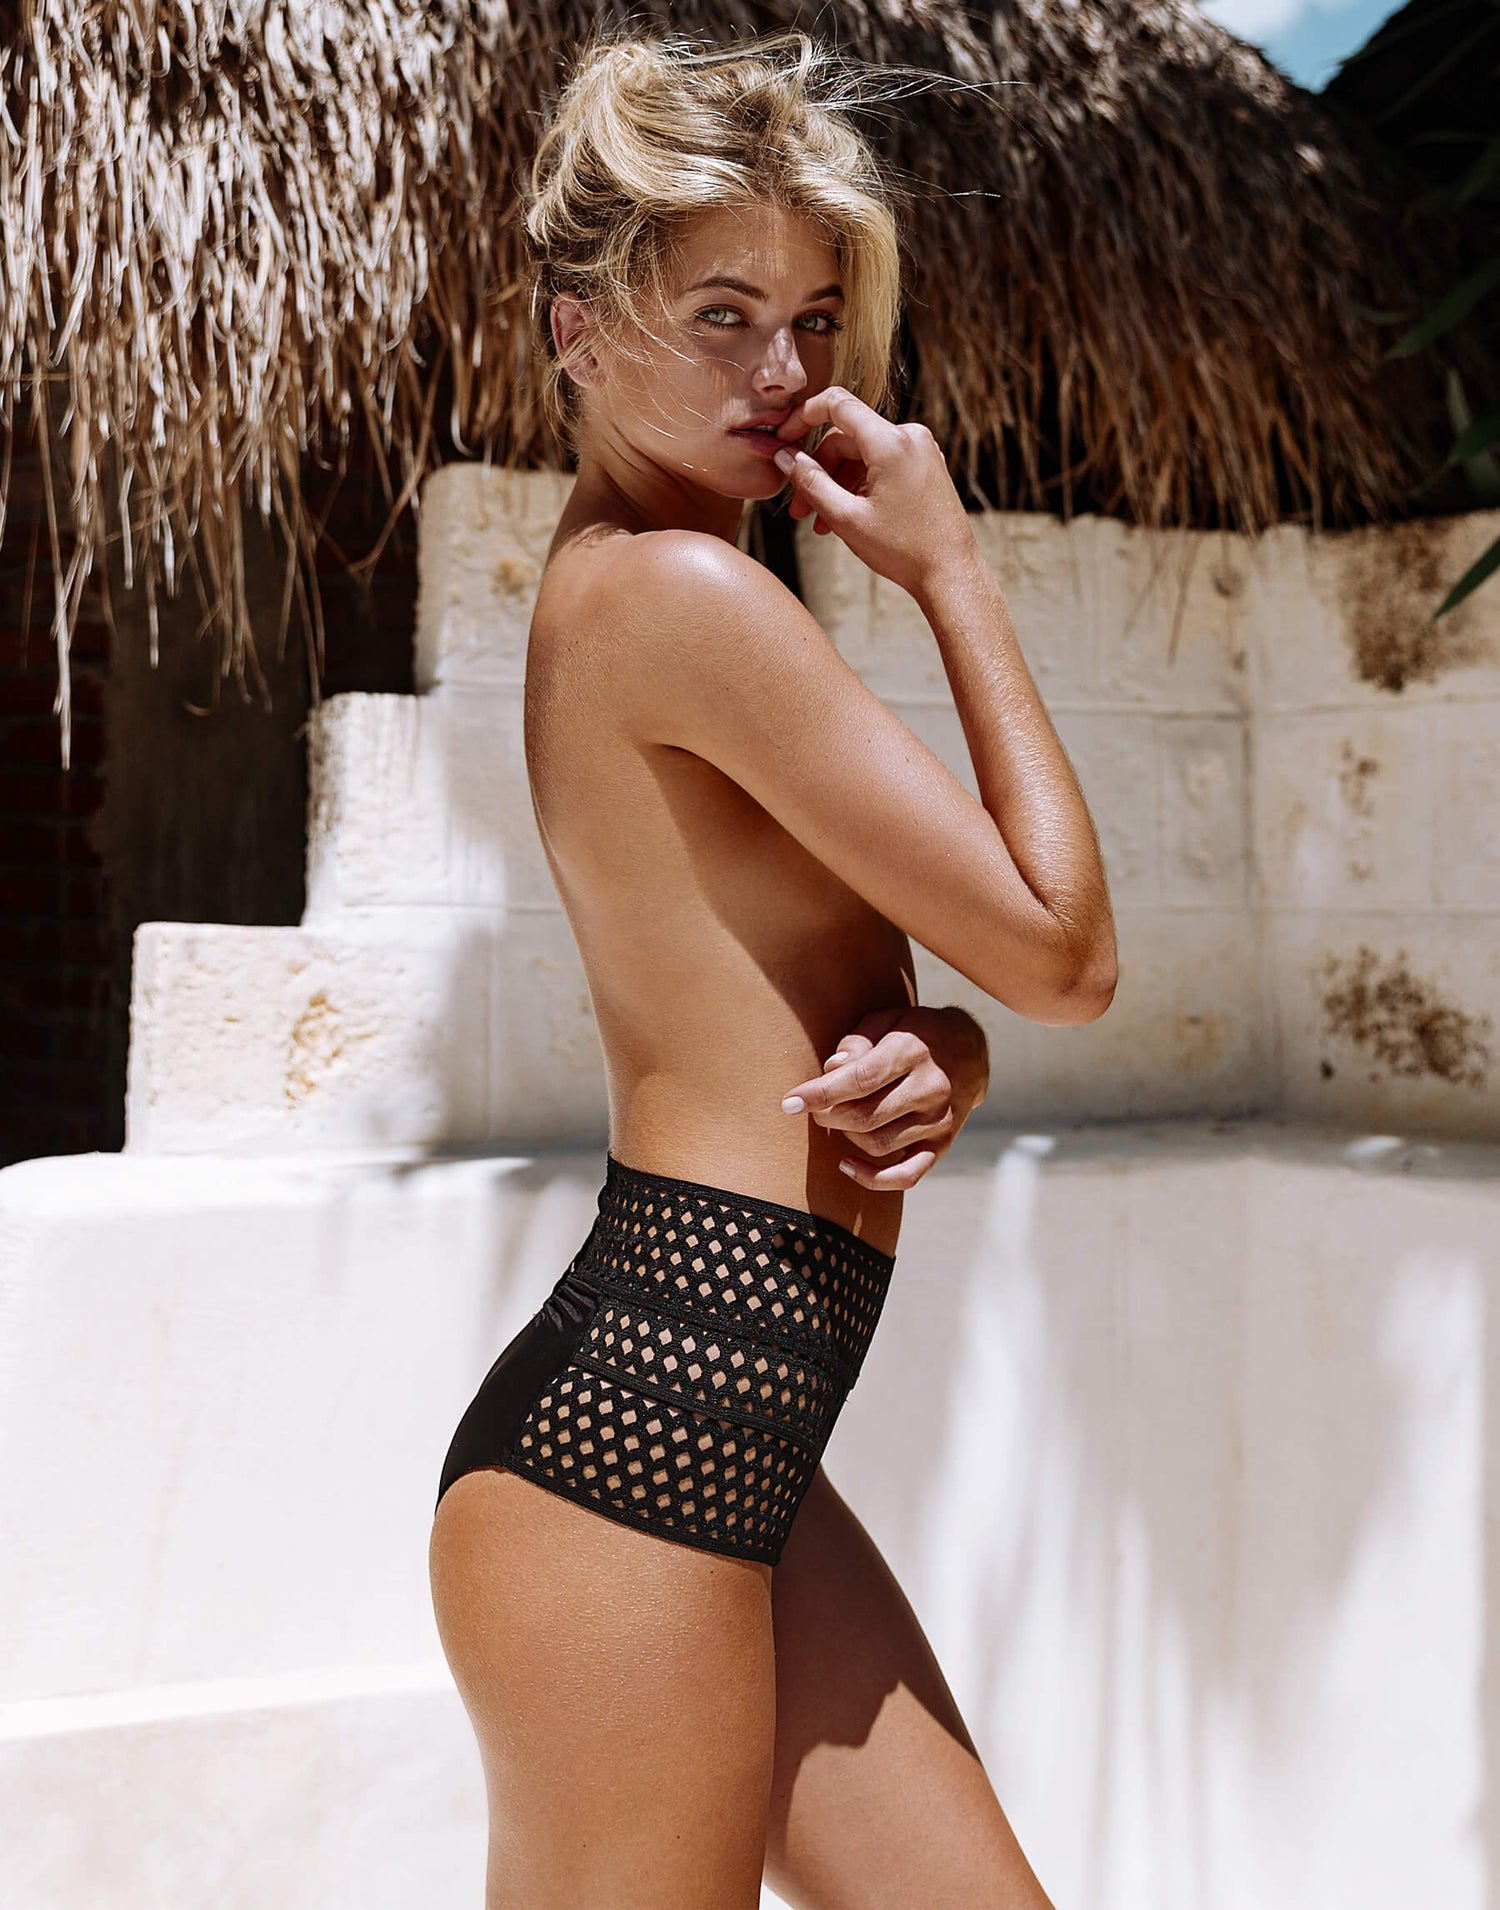 Hayden High Waist Bottom in Black Model View